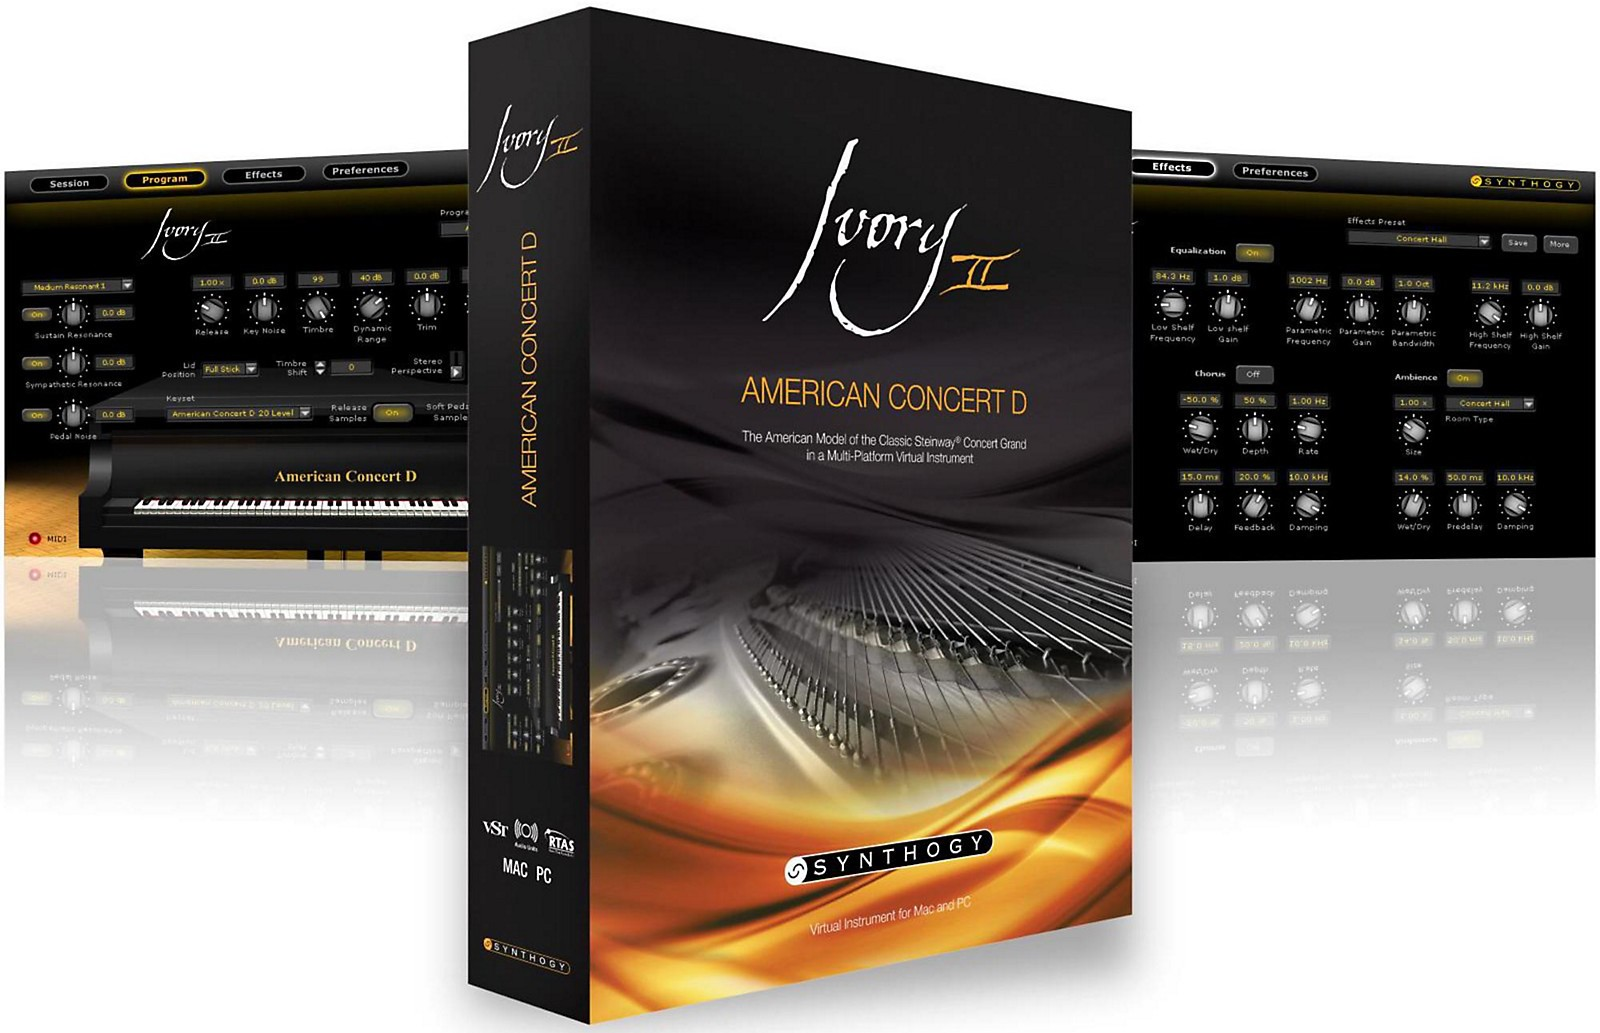 【46%OFF】大人気ピアノ音源 Synthogy Ivory II American Concert Dがアウトレットセール中!